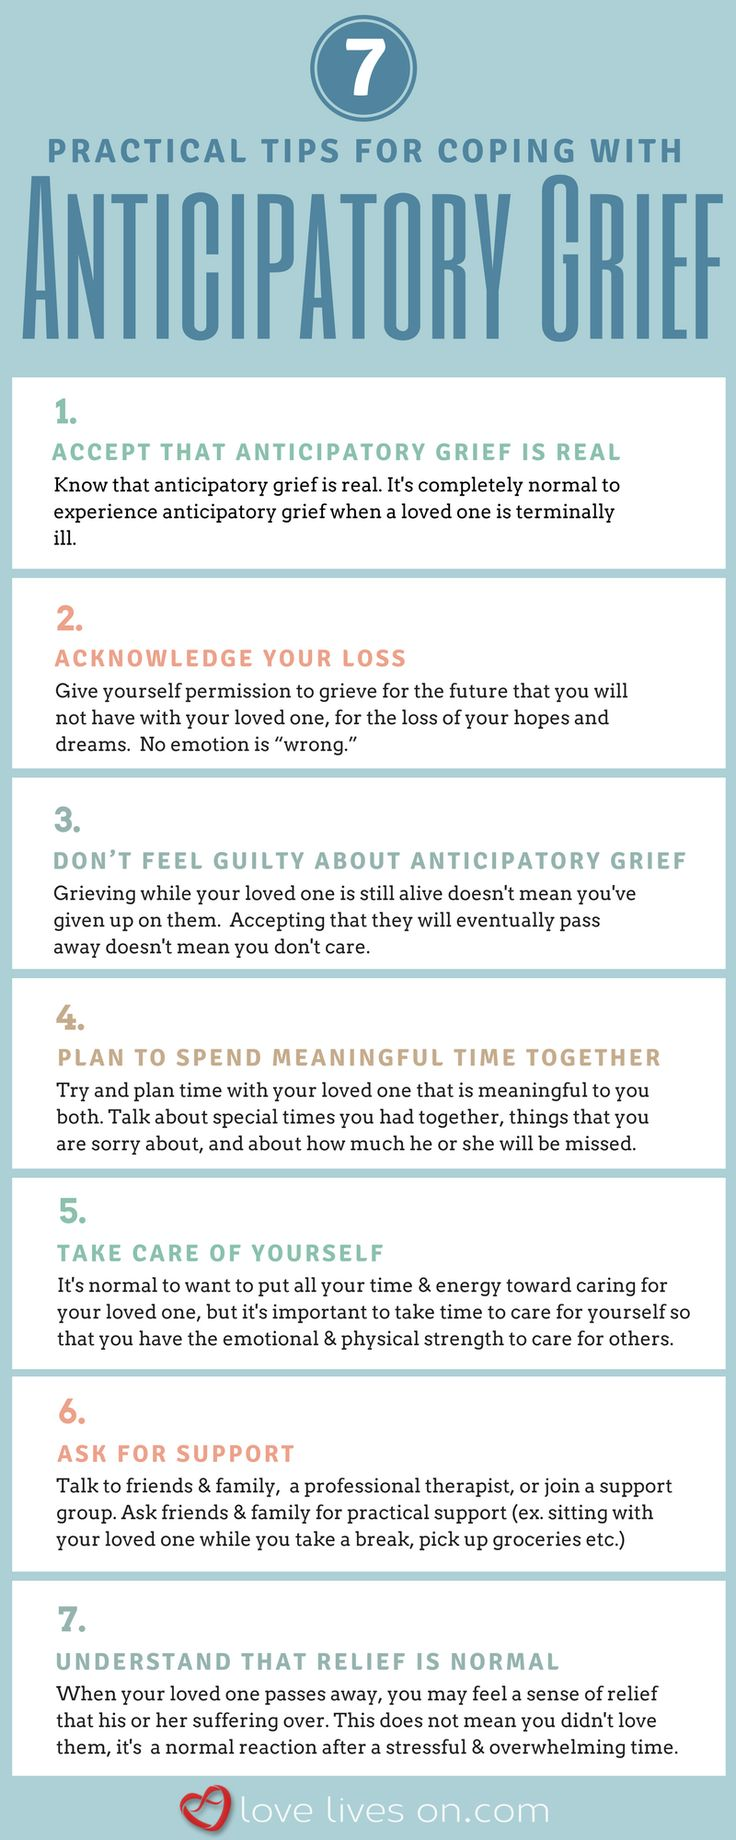 Anticipatory Grief | Coping With a Loved One's Terminal Illness. 7 practical tips for coping with anticipatory grief when a loved one is terminally ill. Click to learn more about anticipatory grief & how to cope. Watch expert interviews on anticipatory grief.